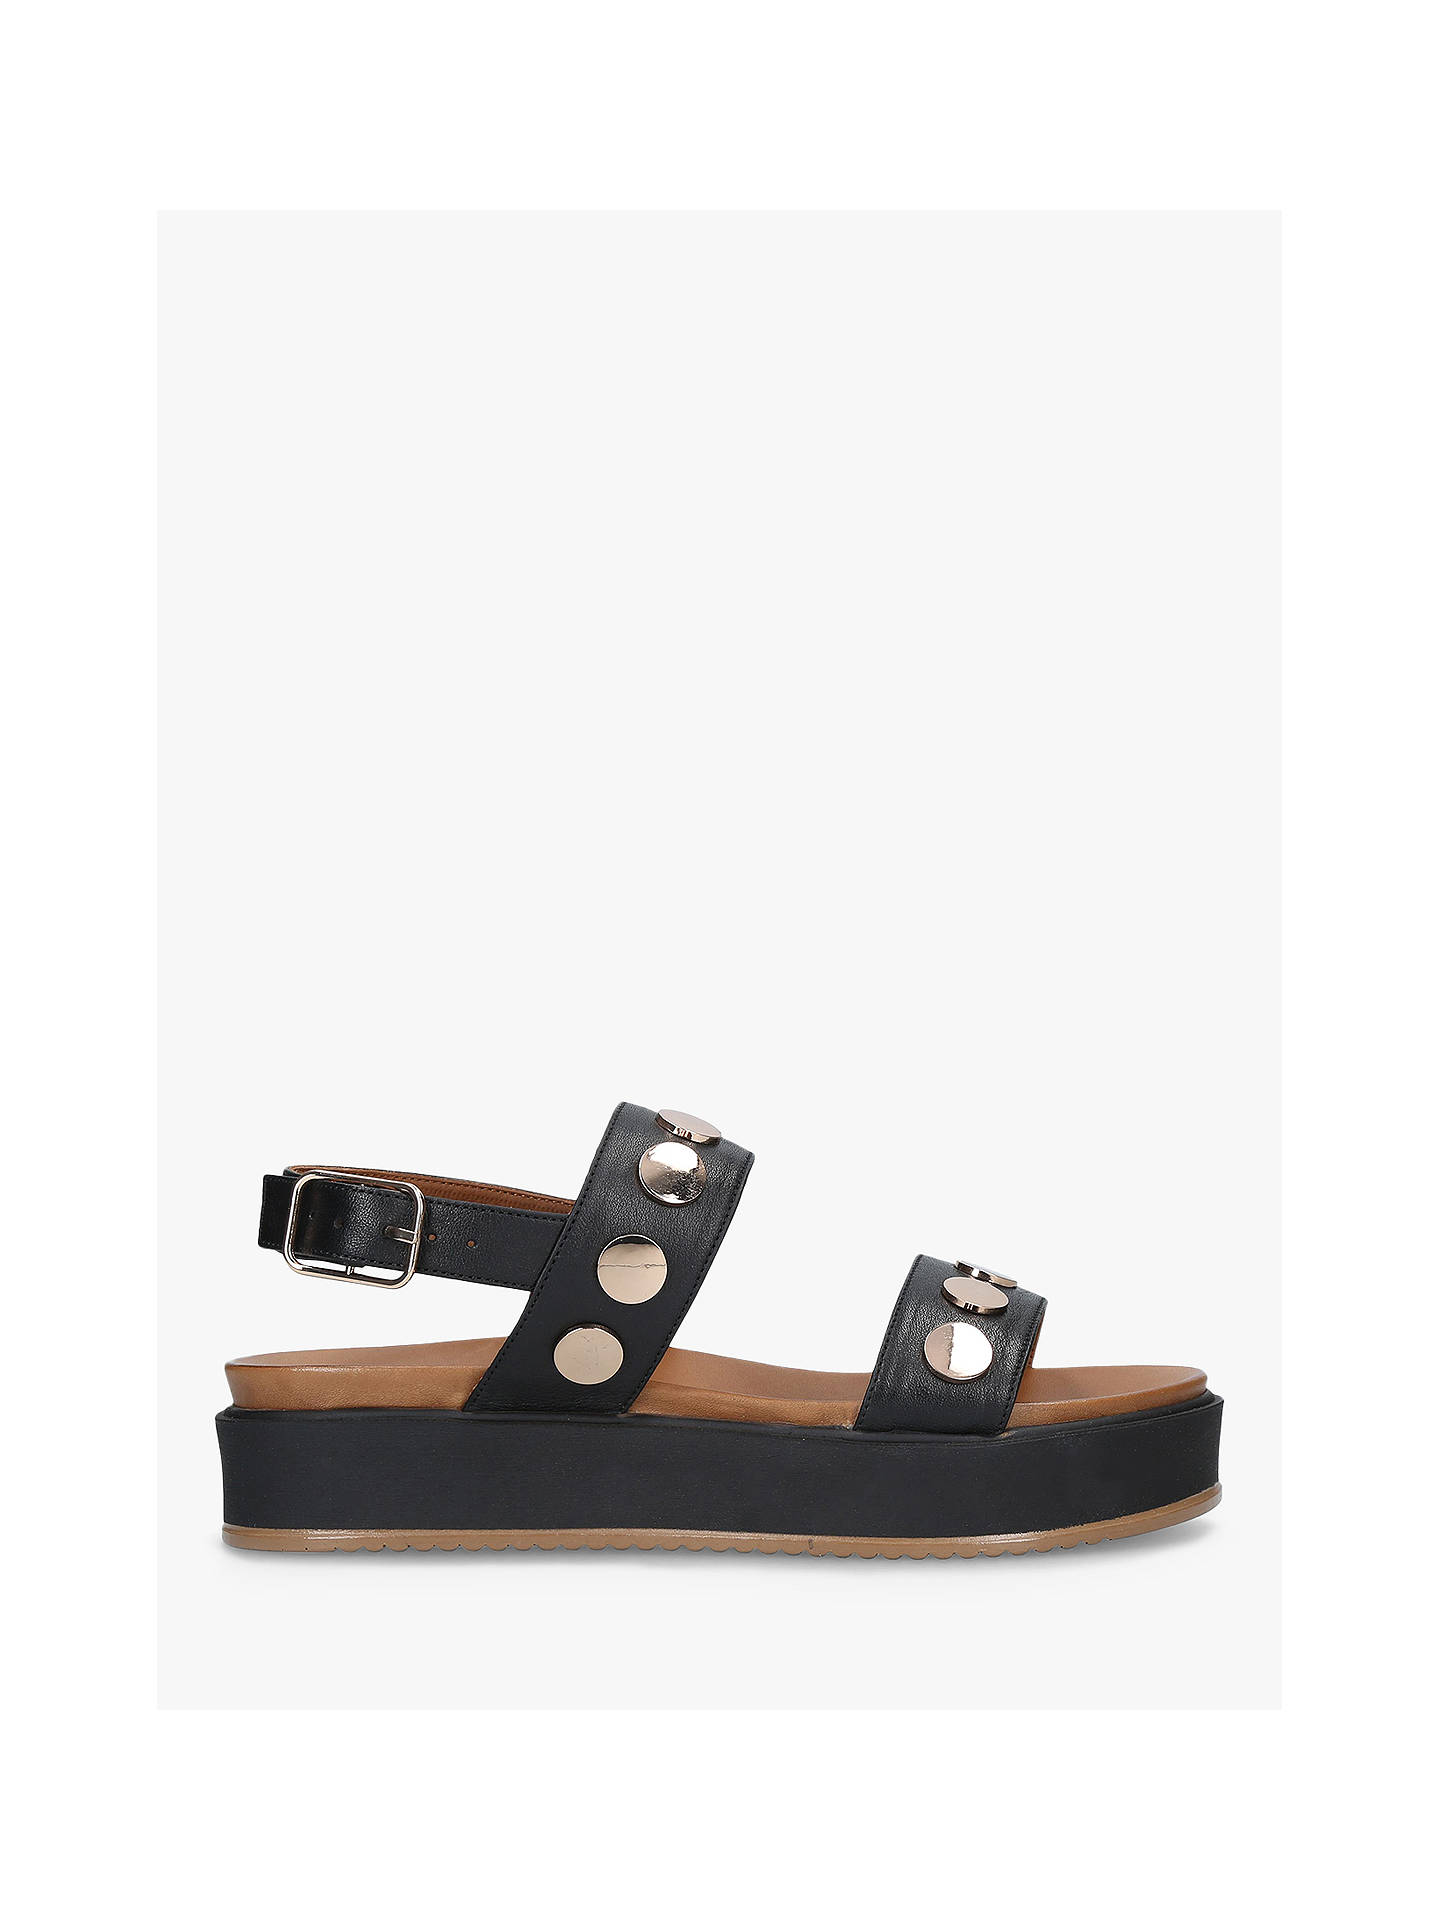 4b2d28efc29 Kurt Geiger London Makenna Flatform Sandals at John Lewis   Partners